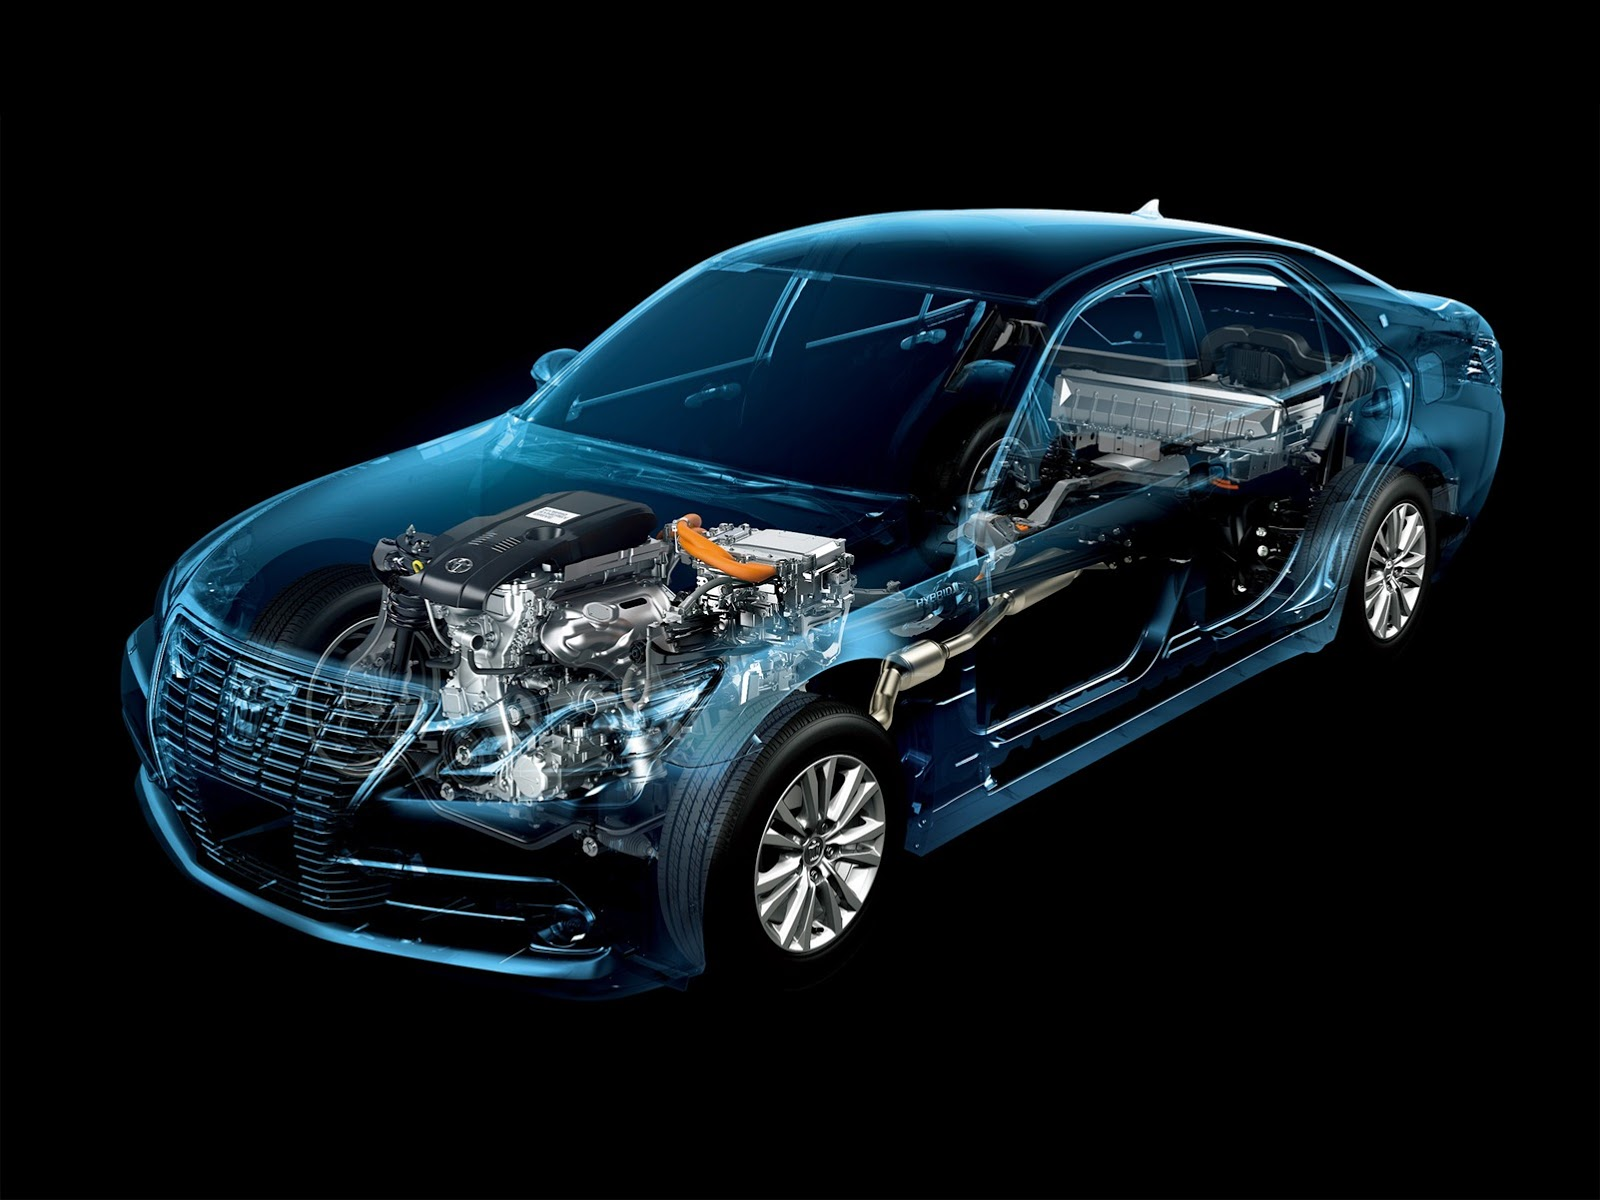 Car Wallpapers With Names 2013 Toyota Crown Royal And Athlete Revealed Autoevolution